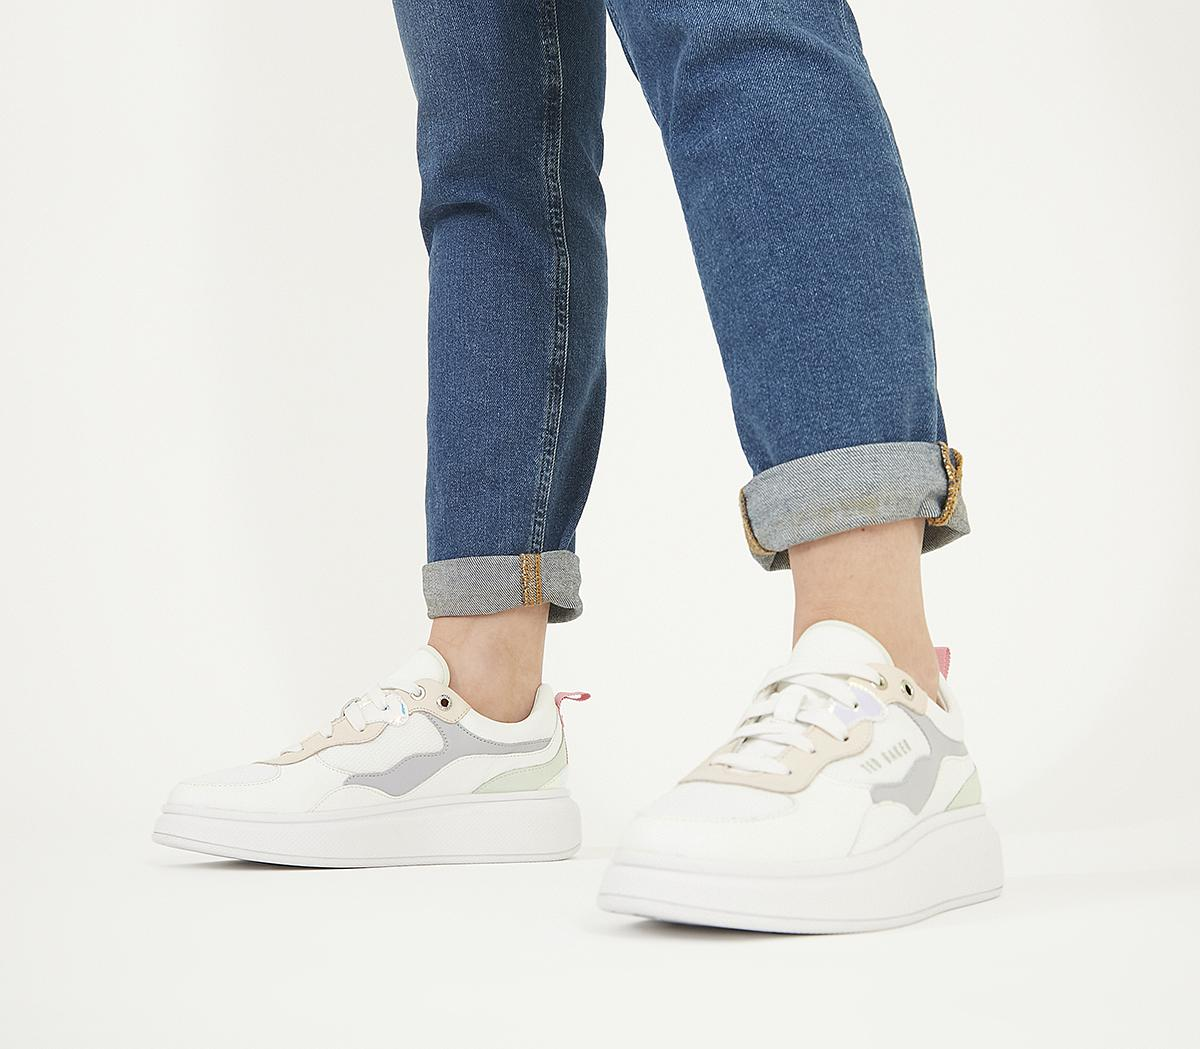 ted baker sneakers review